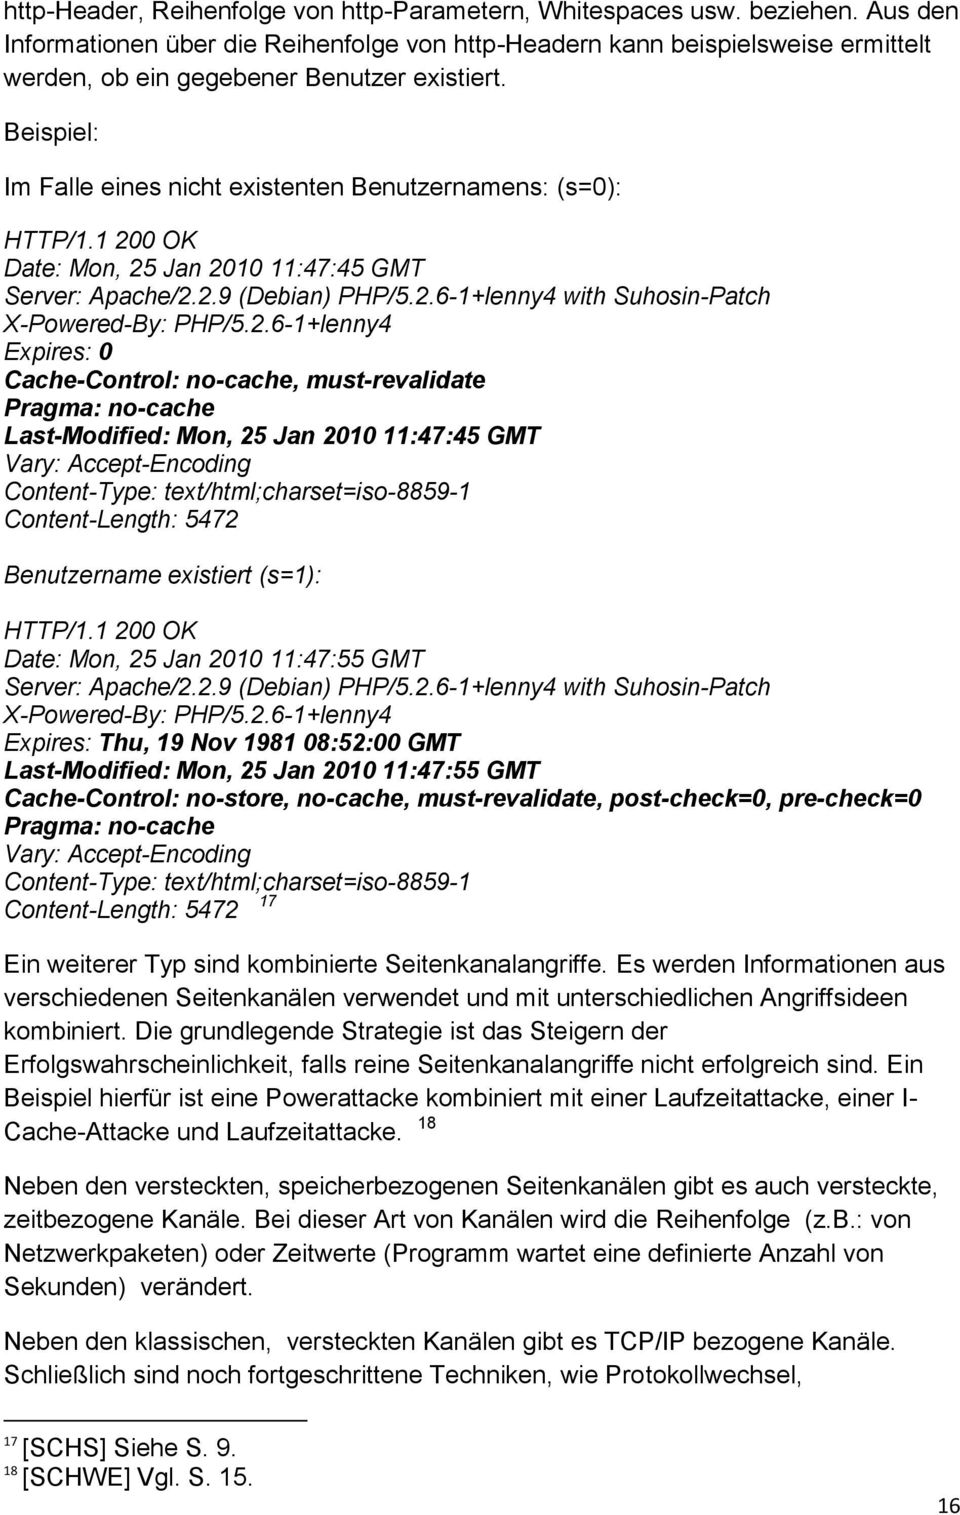 Beispiel: Im Falle eines nicht existenten Benutzernamens: (s=0): HTTP/1.1 200 OK Date: Mon, 25 Jan 2010 11:47:45 GMT Server: Apache/2.2.9 (Debian) PHP/5.2.6-1+lenny4 with Suhosin-Patch X-Powered-By: PHP/5.